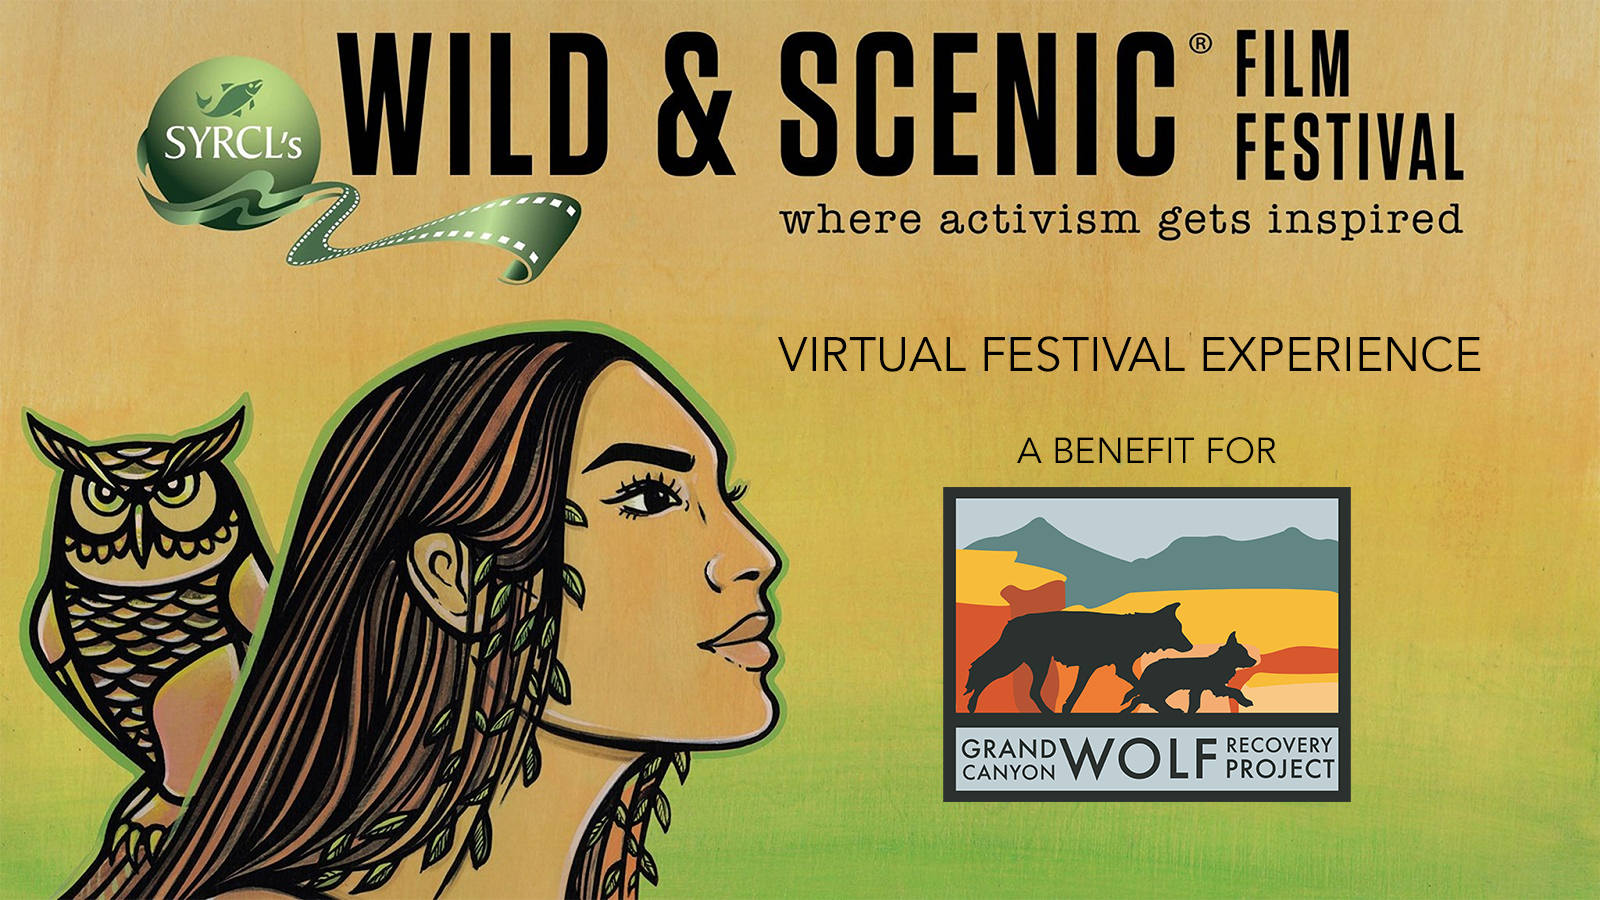 Grand Canyon Wolf Recovery Project Presents SYRCL's Wild & Scenic Film Festival On Tour